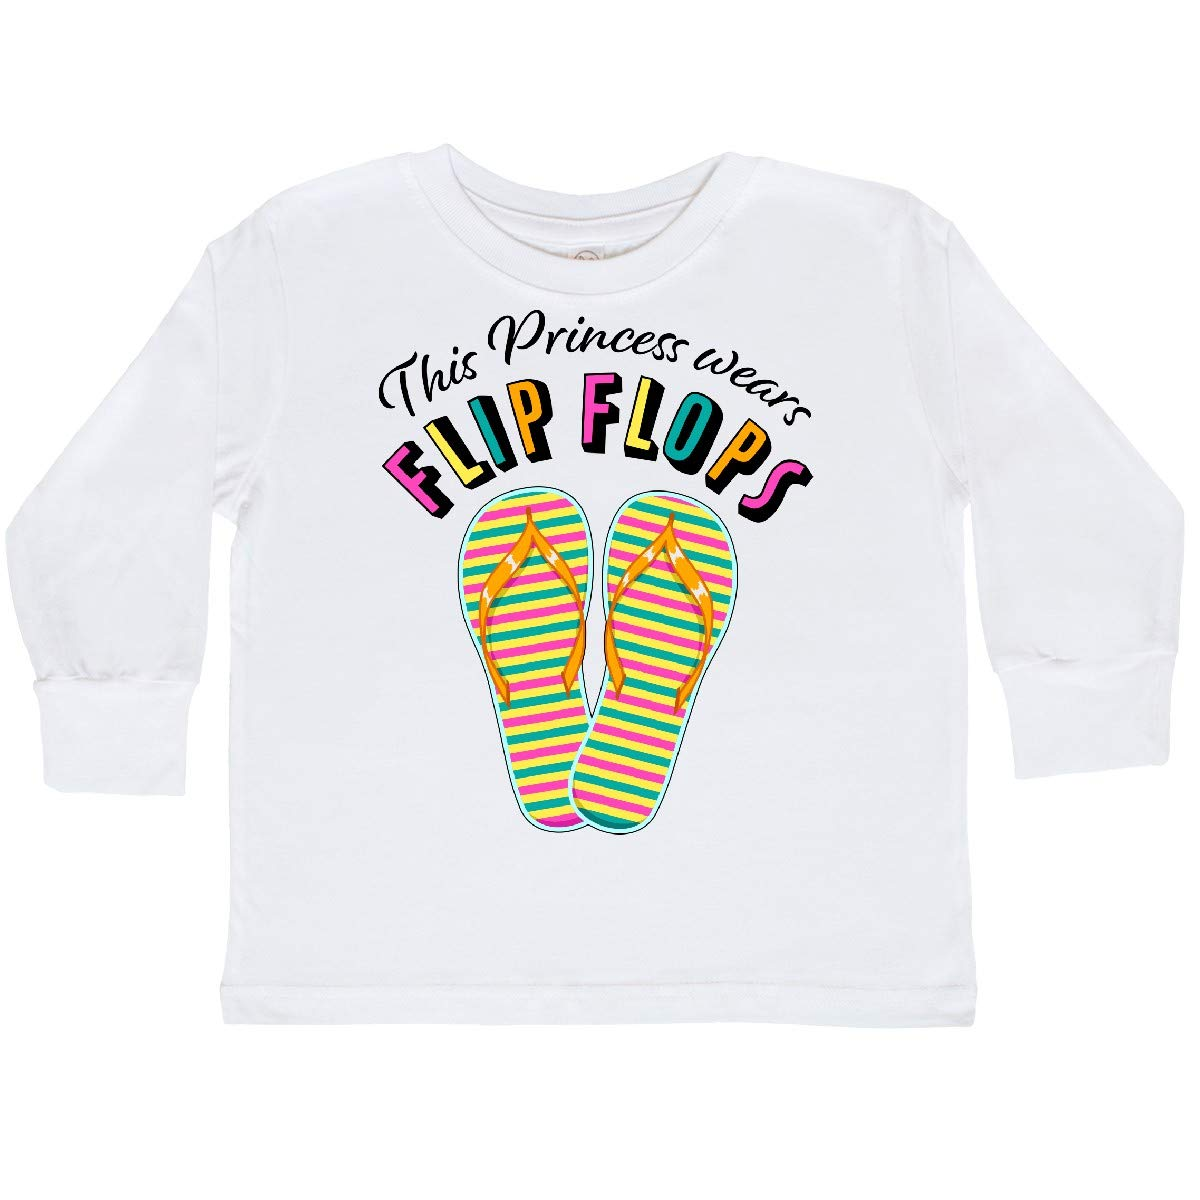 inktastic This Princess Wears Flip Flops Toddler Long Sleeve T-Shirt